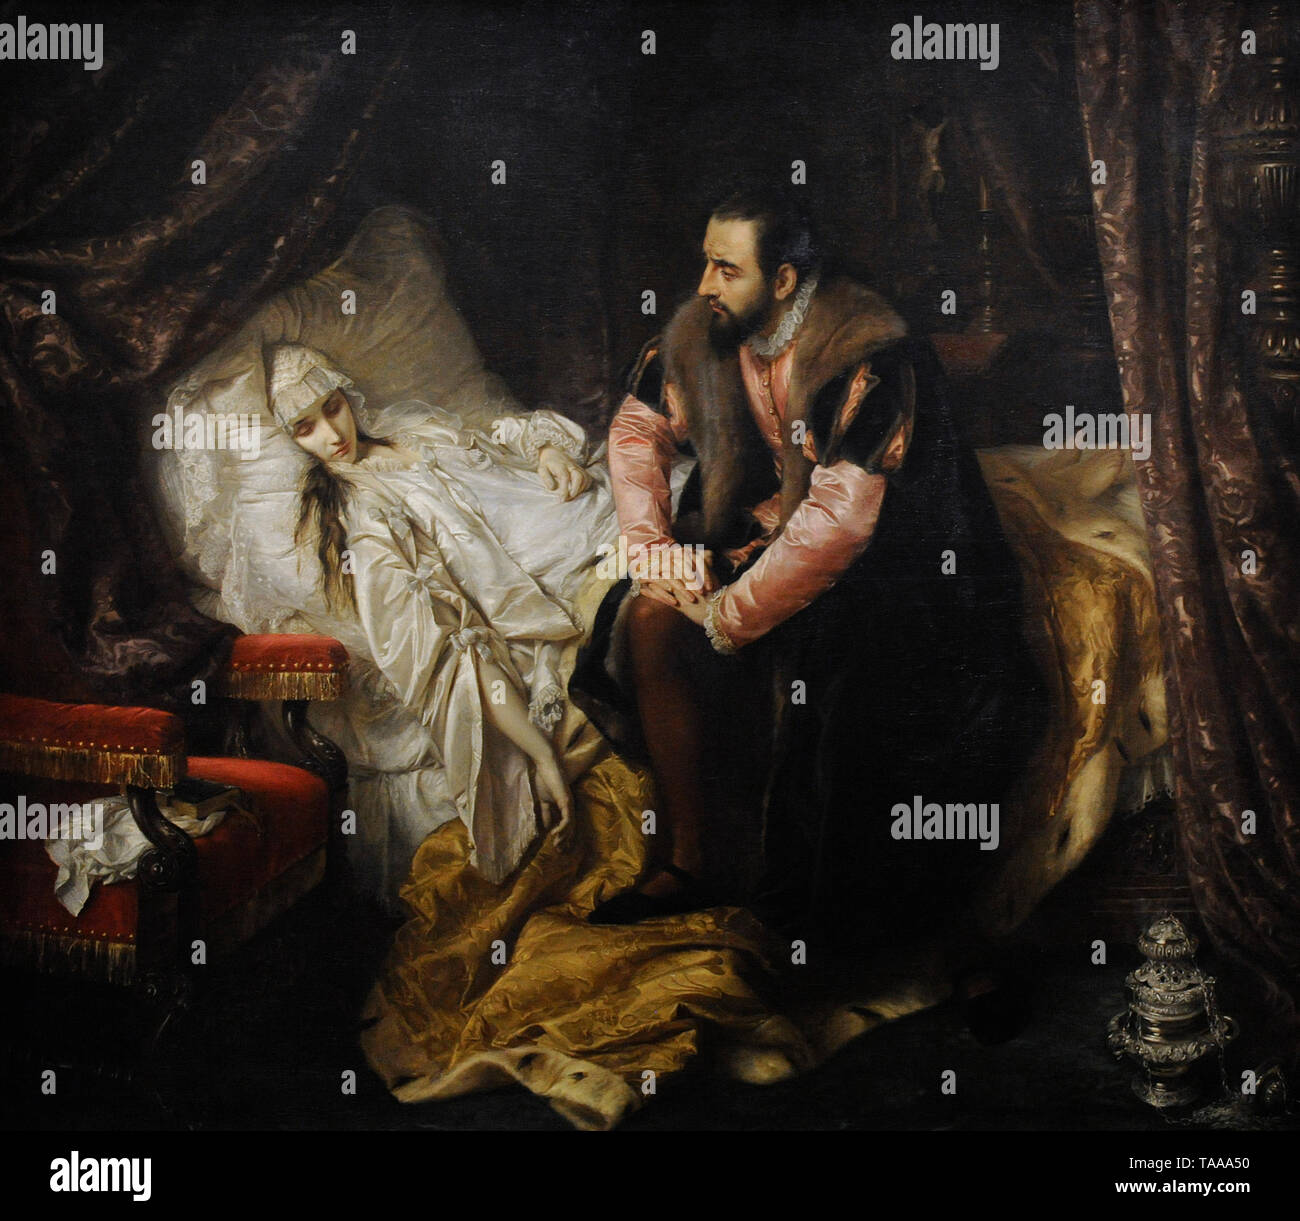 Barbara Radziwill (1520-1551). Queen of Poland. The Death of Barbara Radziwill, 1860, by Jozef Simmler (1823-1868). National Museum. Warsaw. Poland. - Stock Image